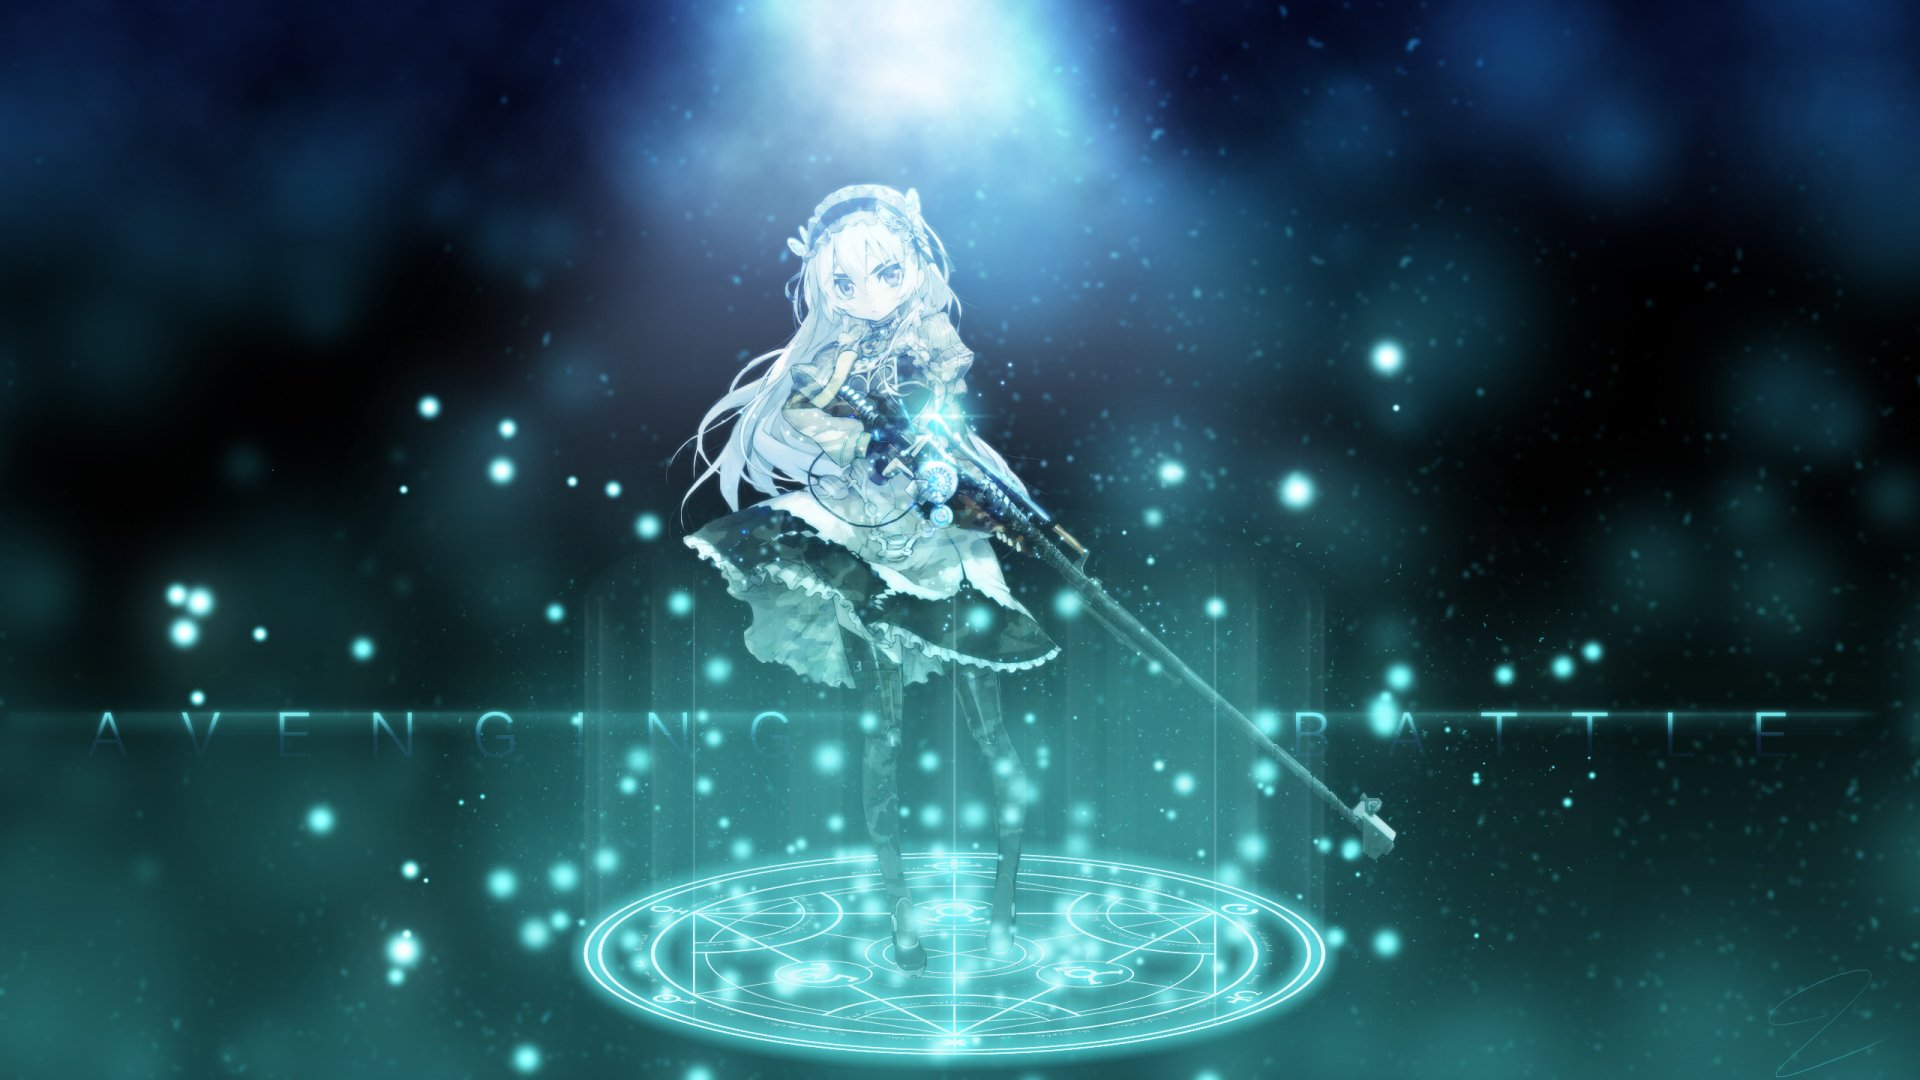 Wallpapers ID:802083